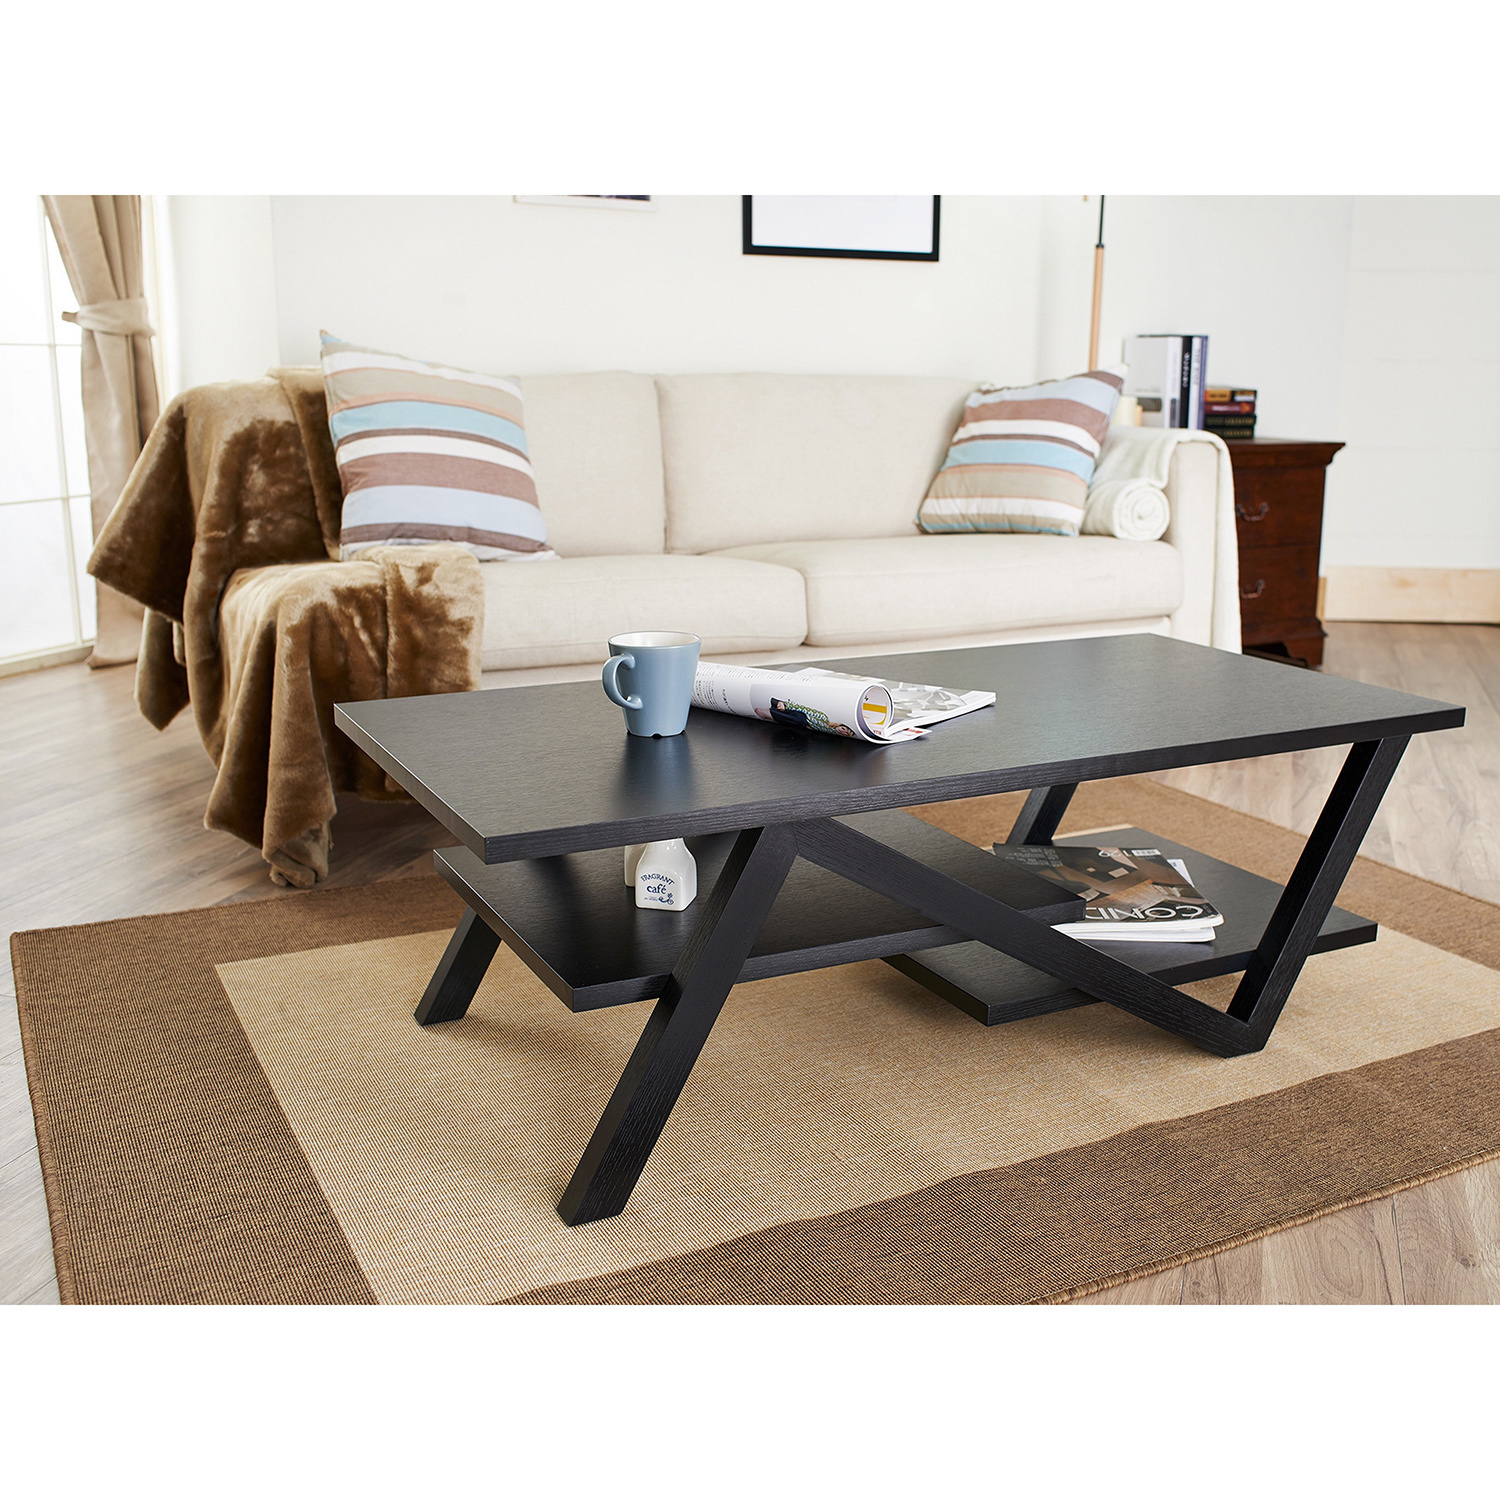 Furniture of america zoe modern coffee table apartment therapys bazaar